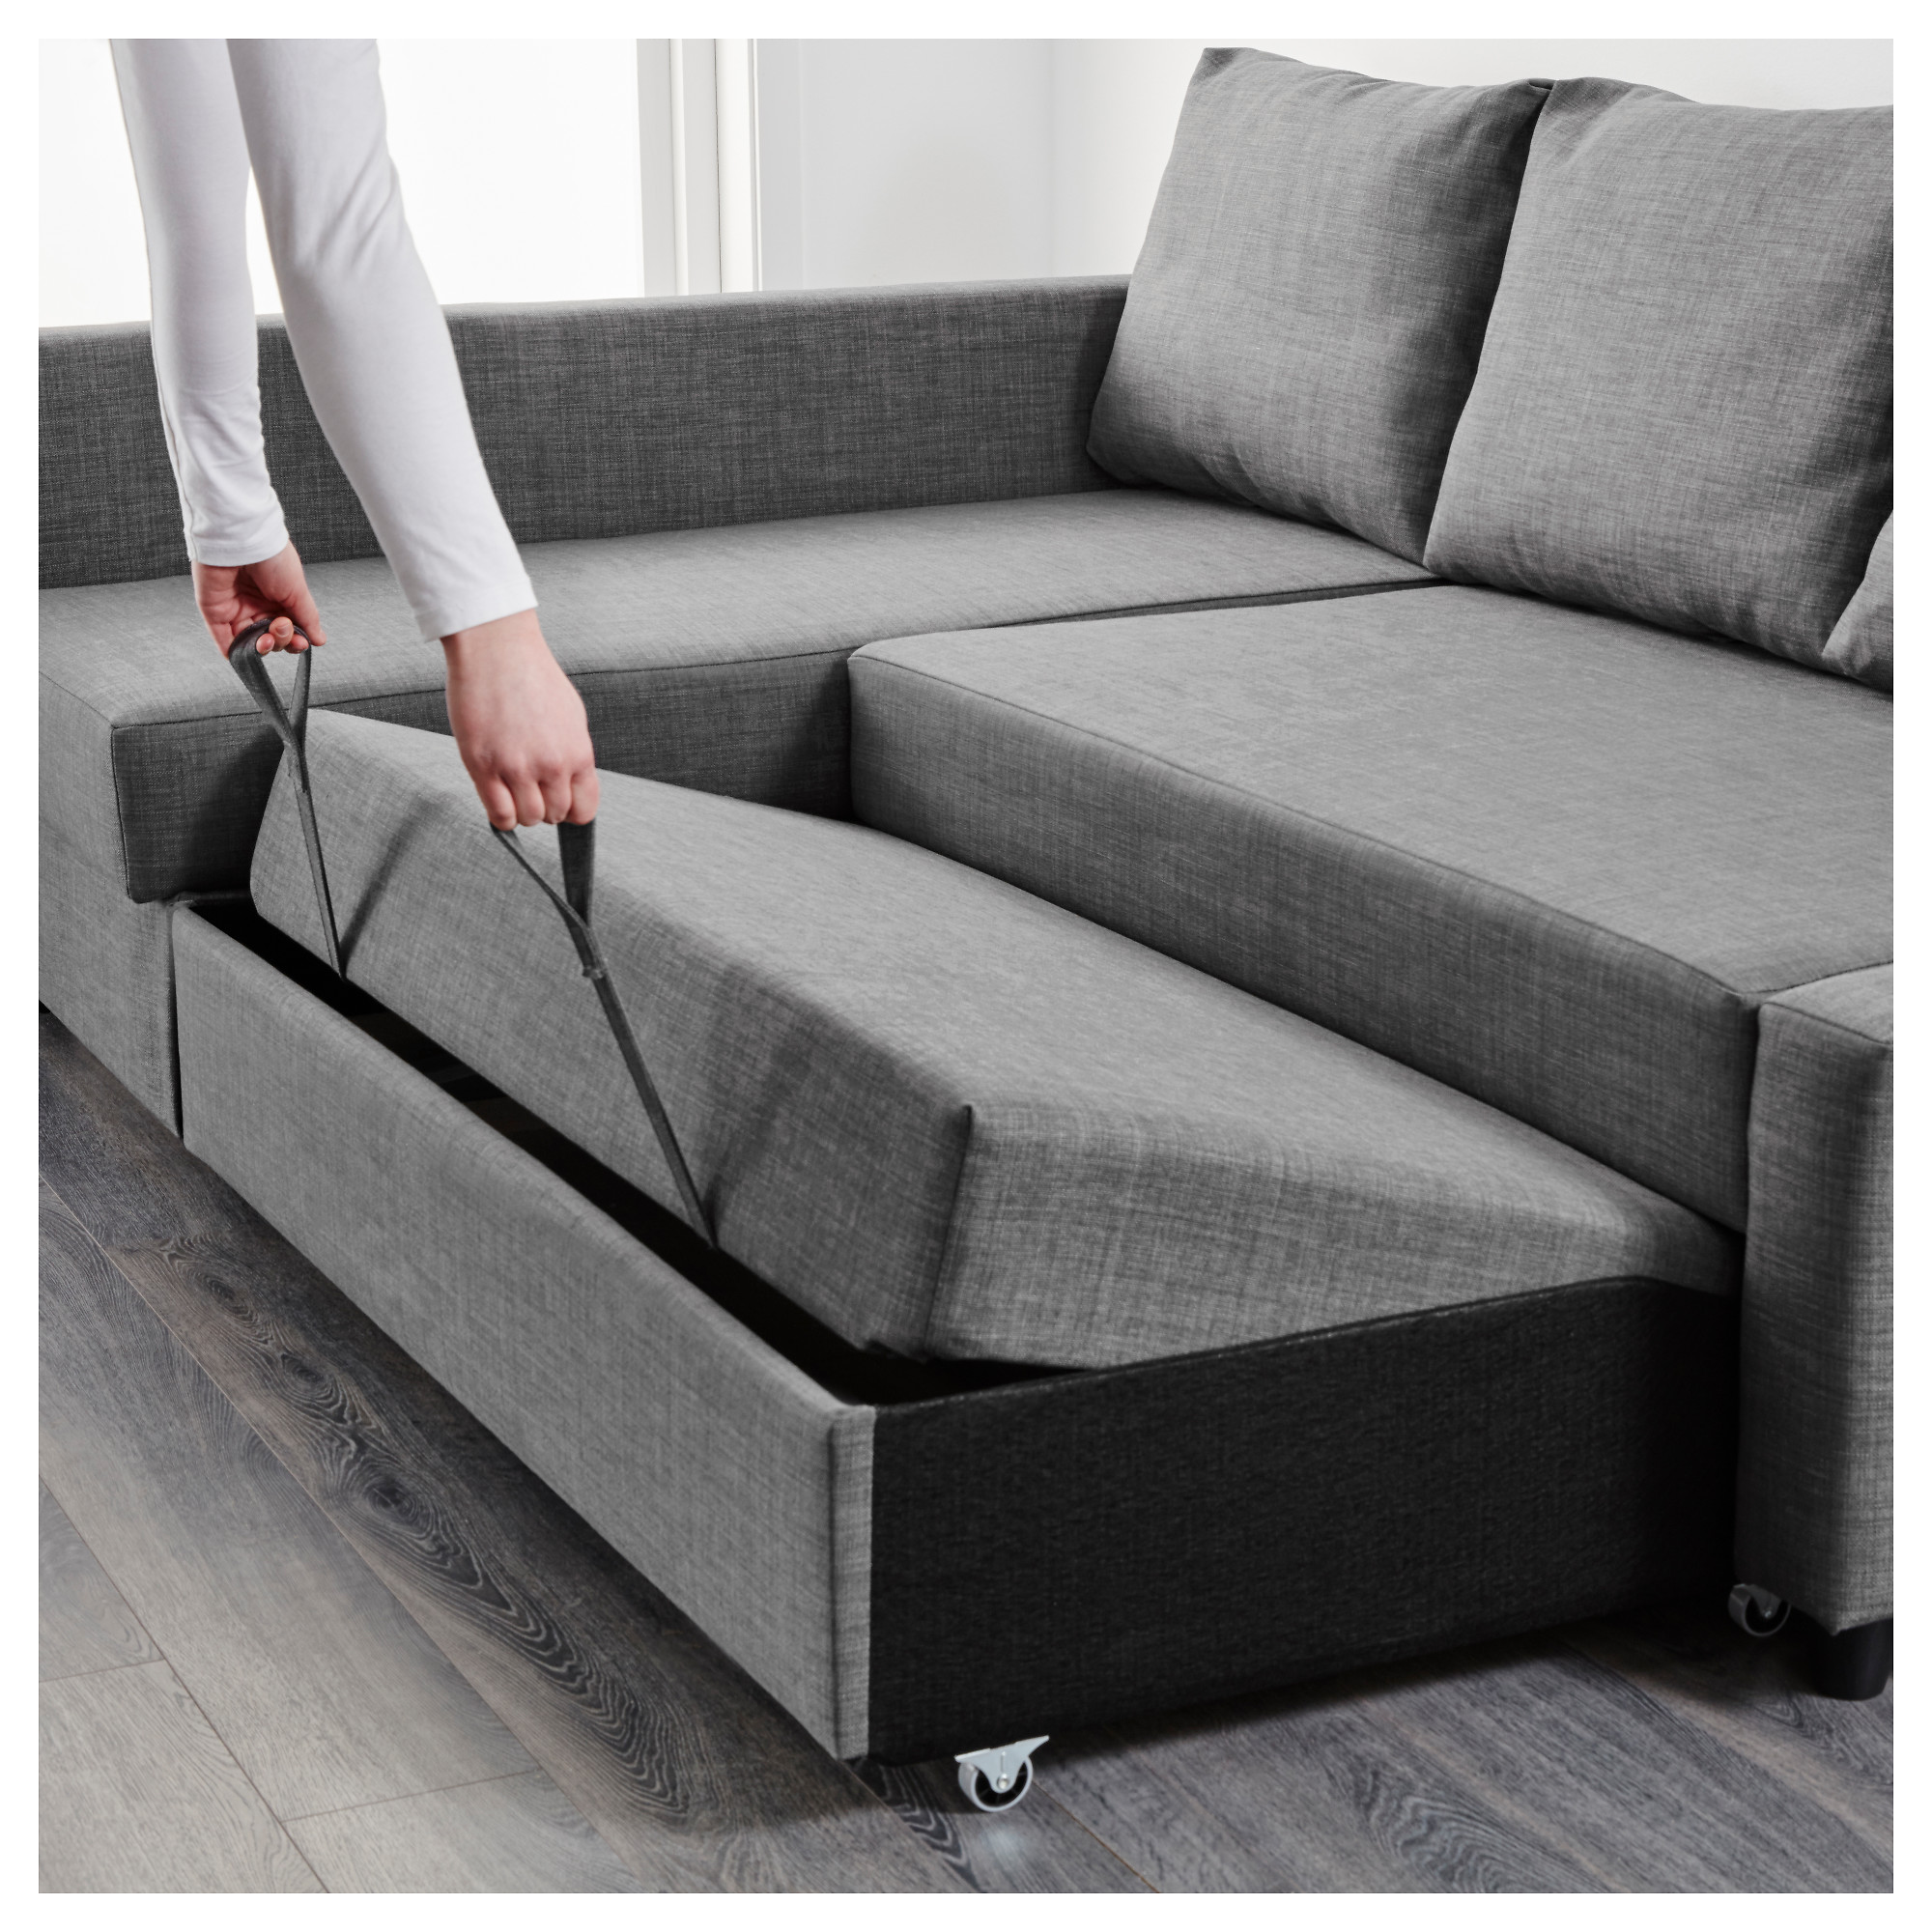 Ordinaire FRIHETEN Corner Sofa Bed With Storage   Skiftebo Dark Gray   IKEA